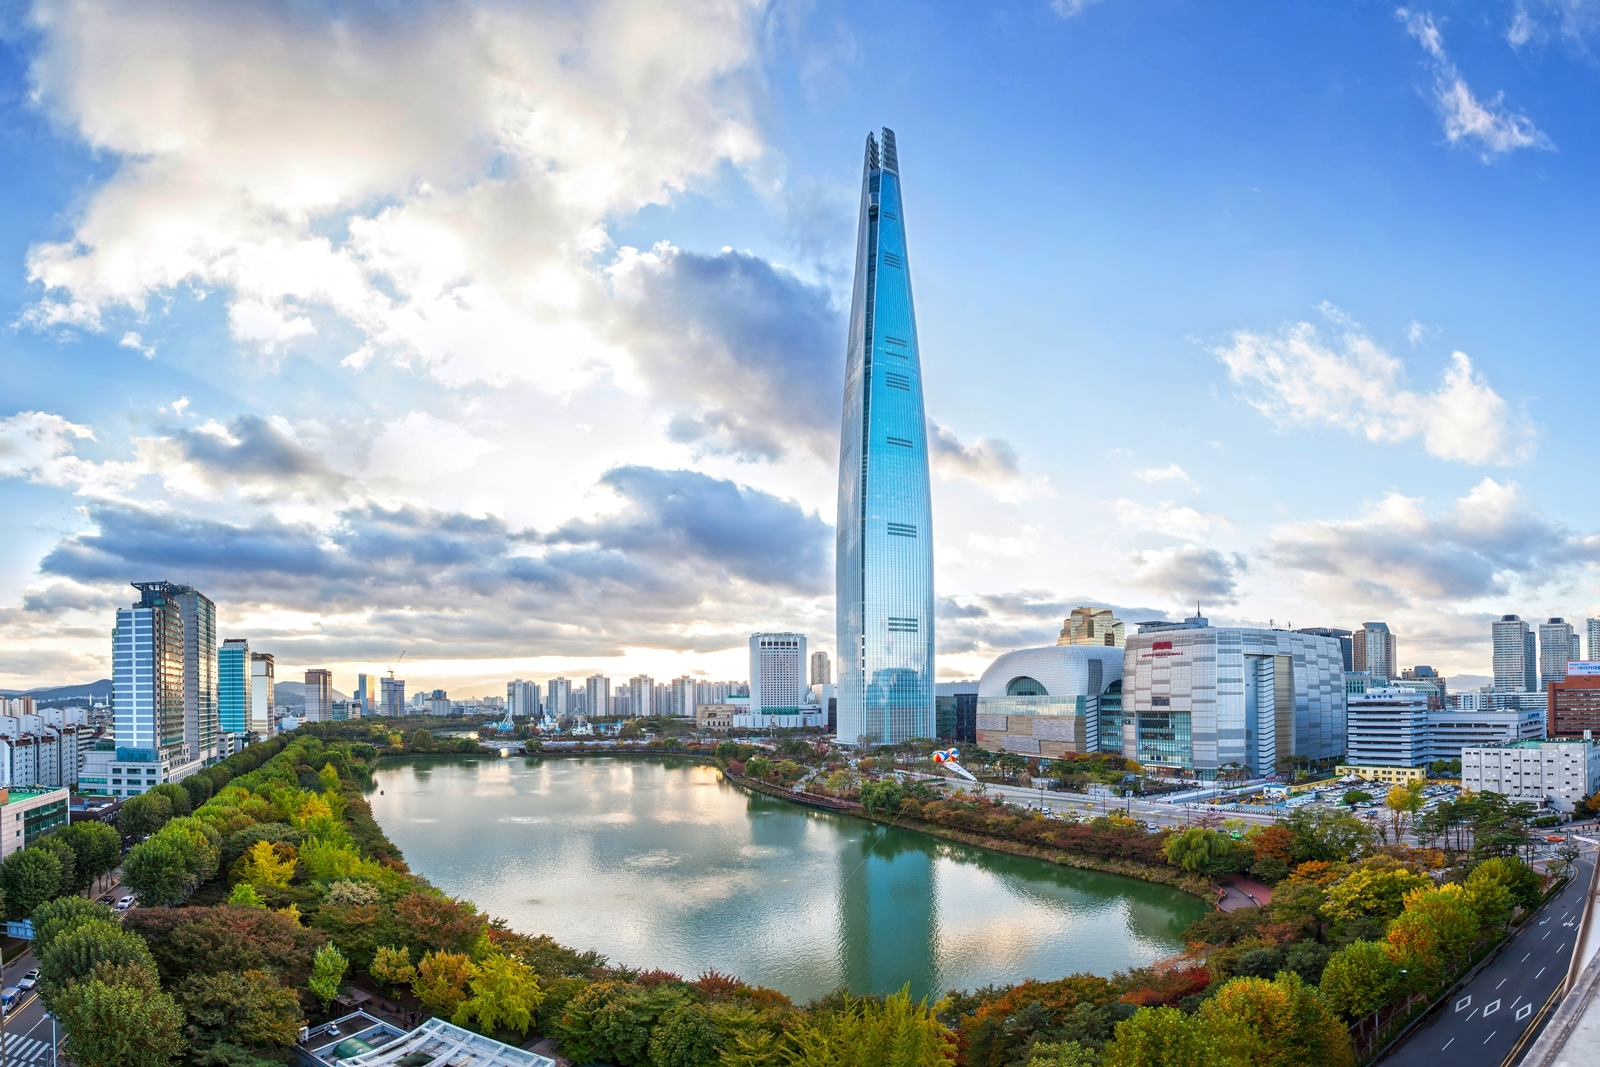 Seoul's Lotte World Tower Completes as World's 5th Tallest Building | ArchDaily